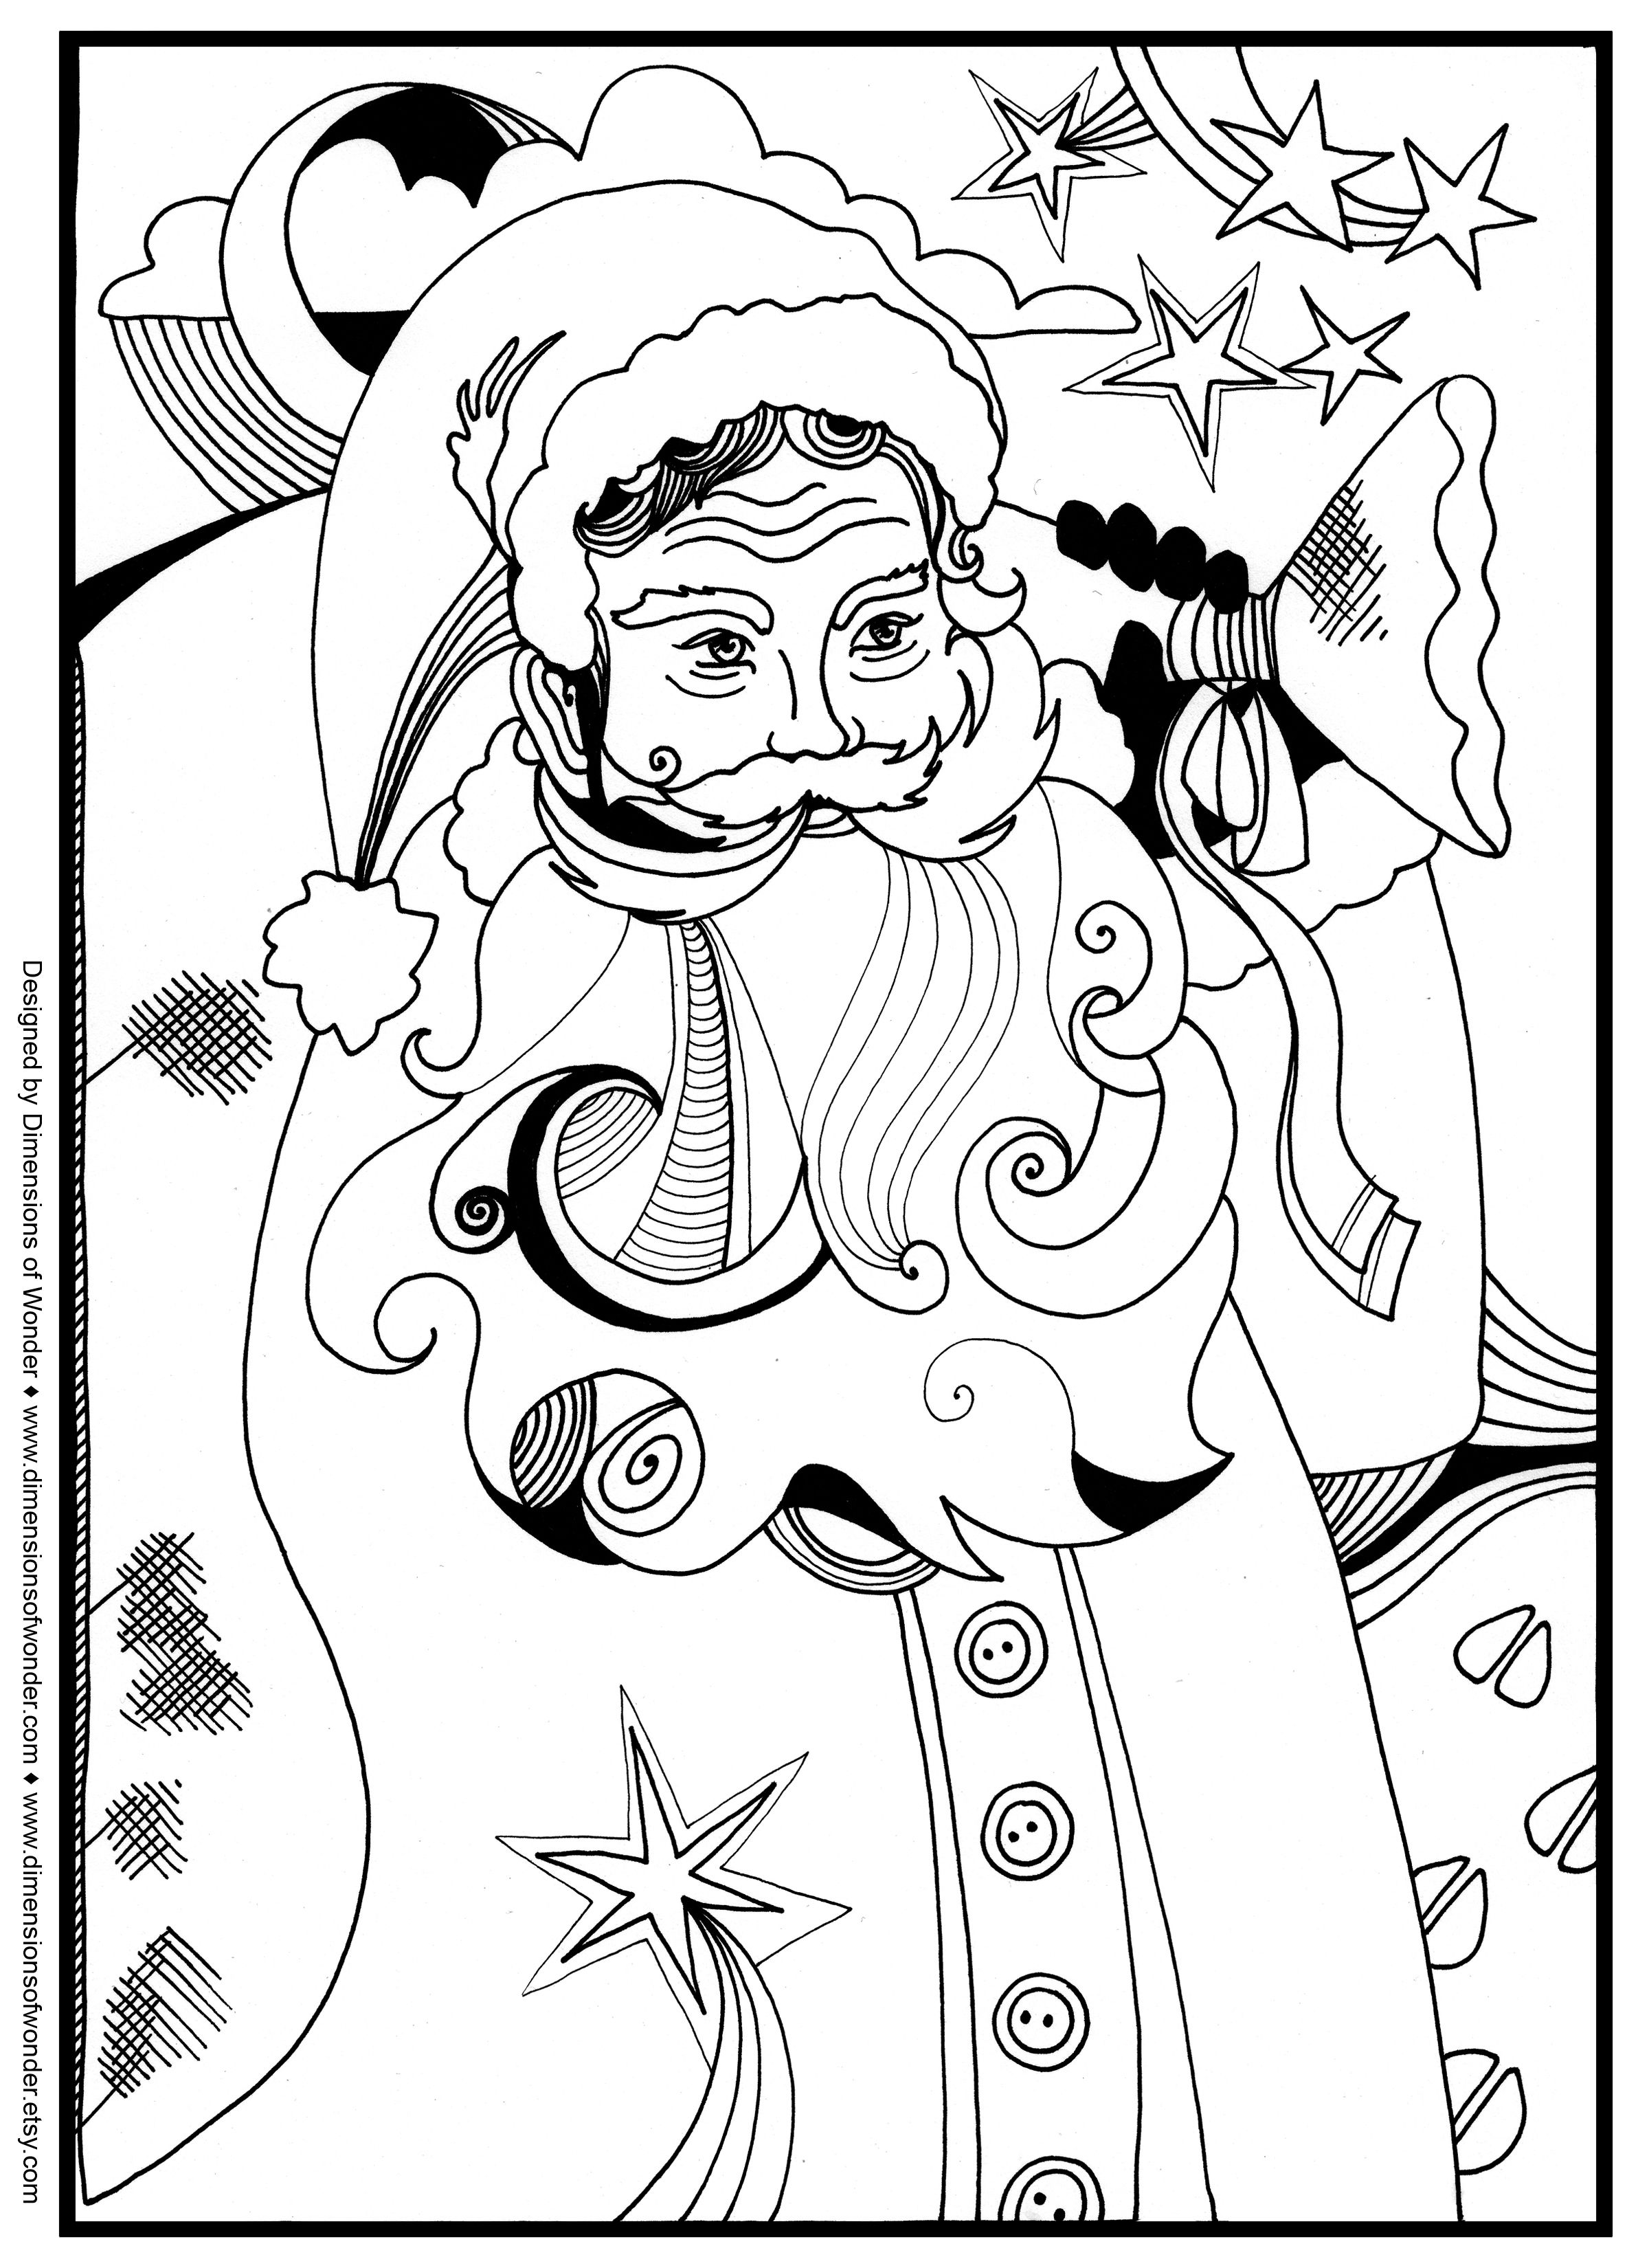 Santa Coloring Book Pages With Christmas Around The World Kidsfreecoloring Net